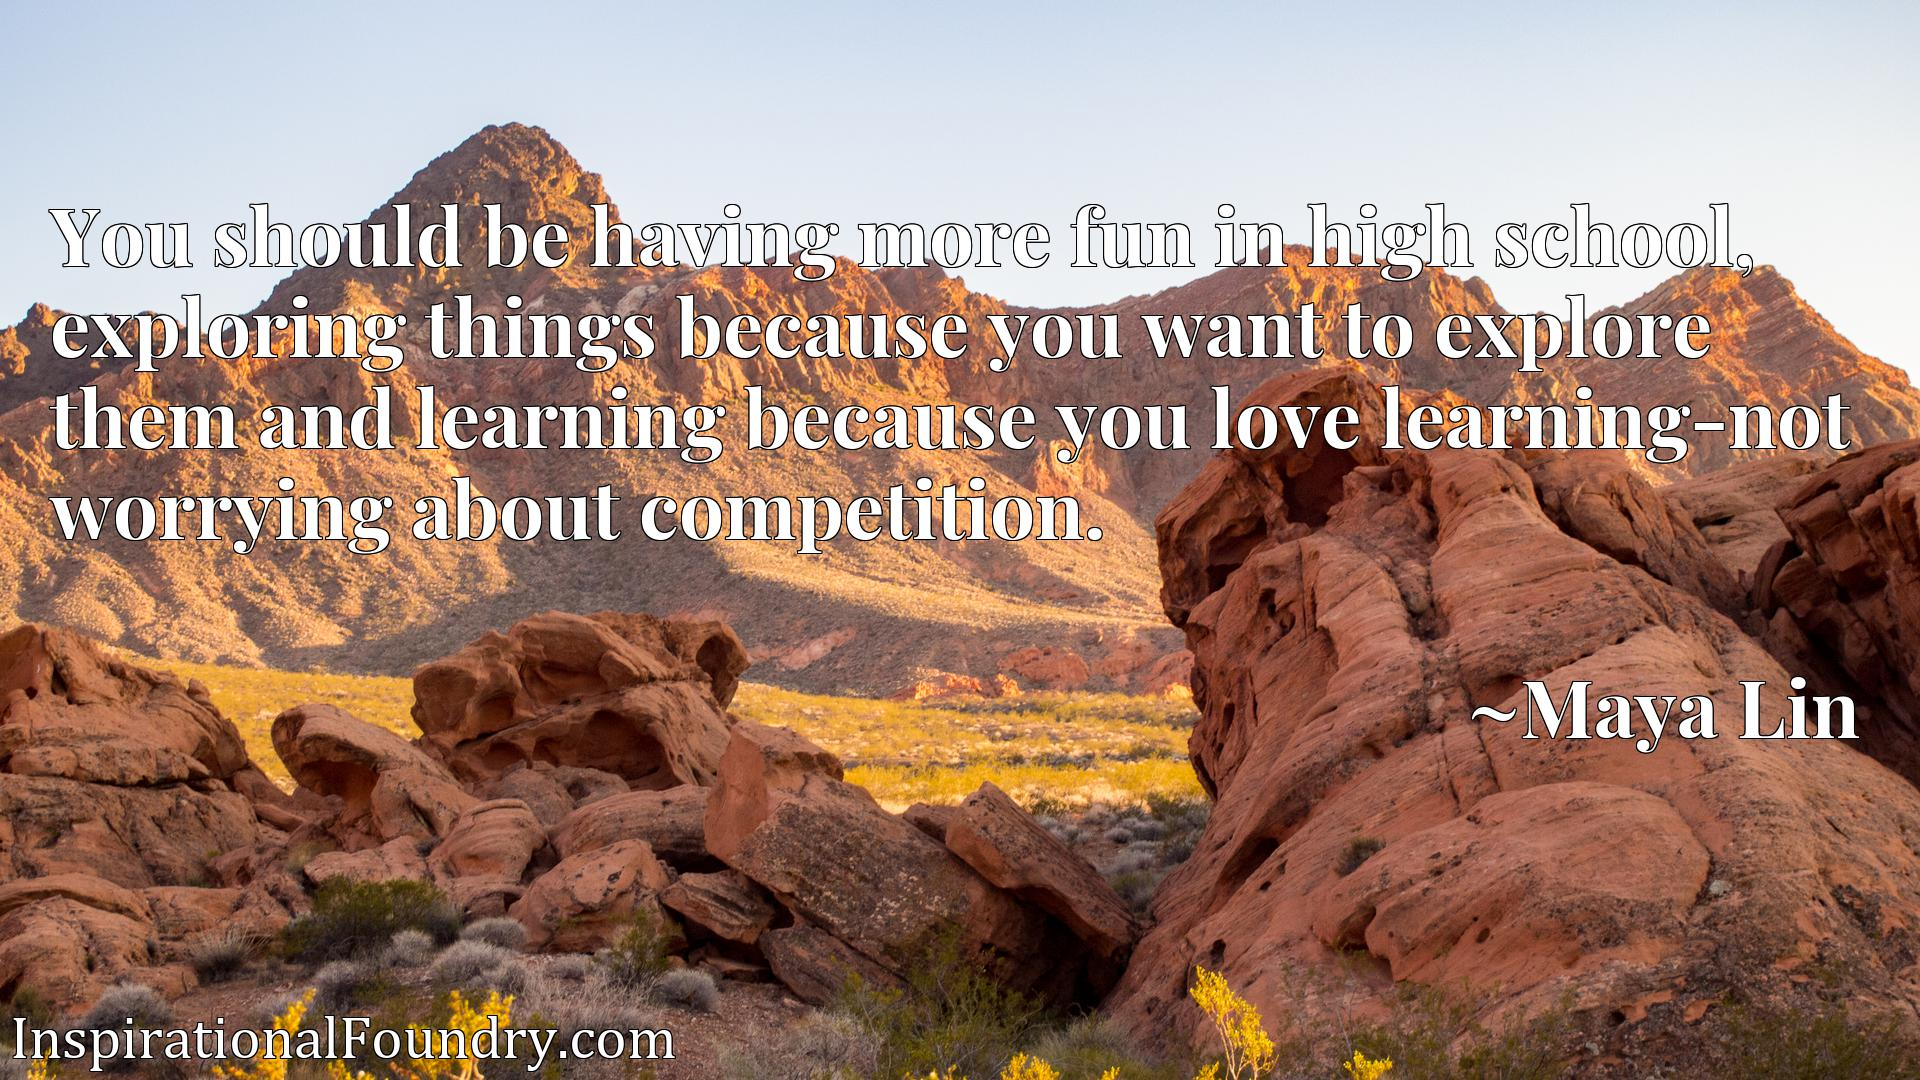 You should be having more fun in high school, exploring things because you want to explore them and learning because you love learning-not worrying about competition.